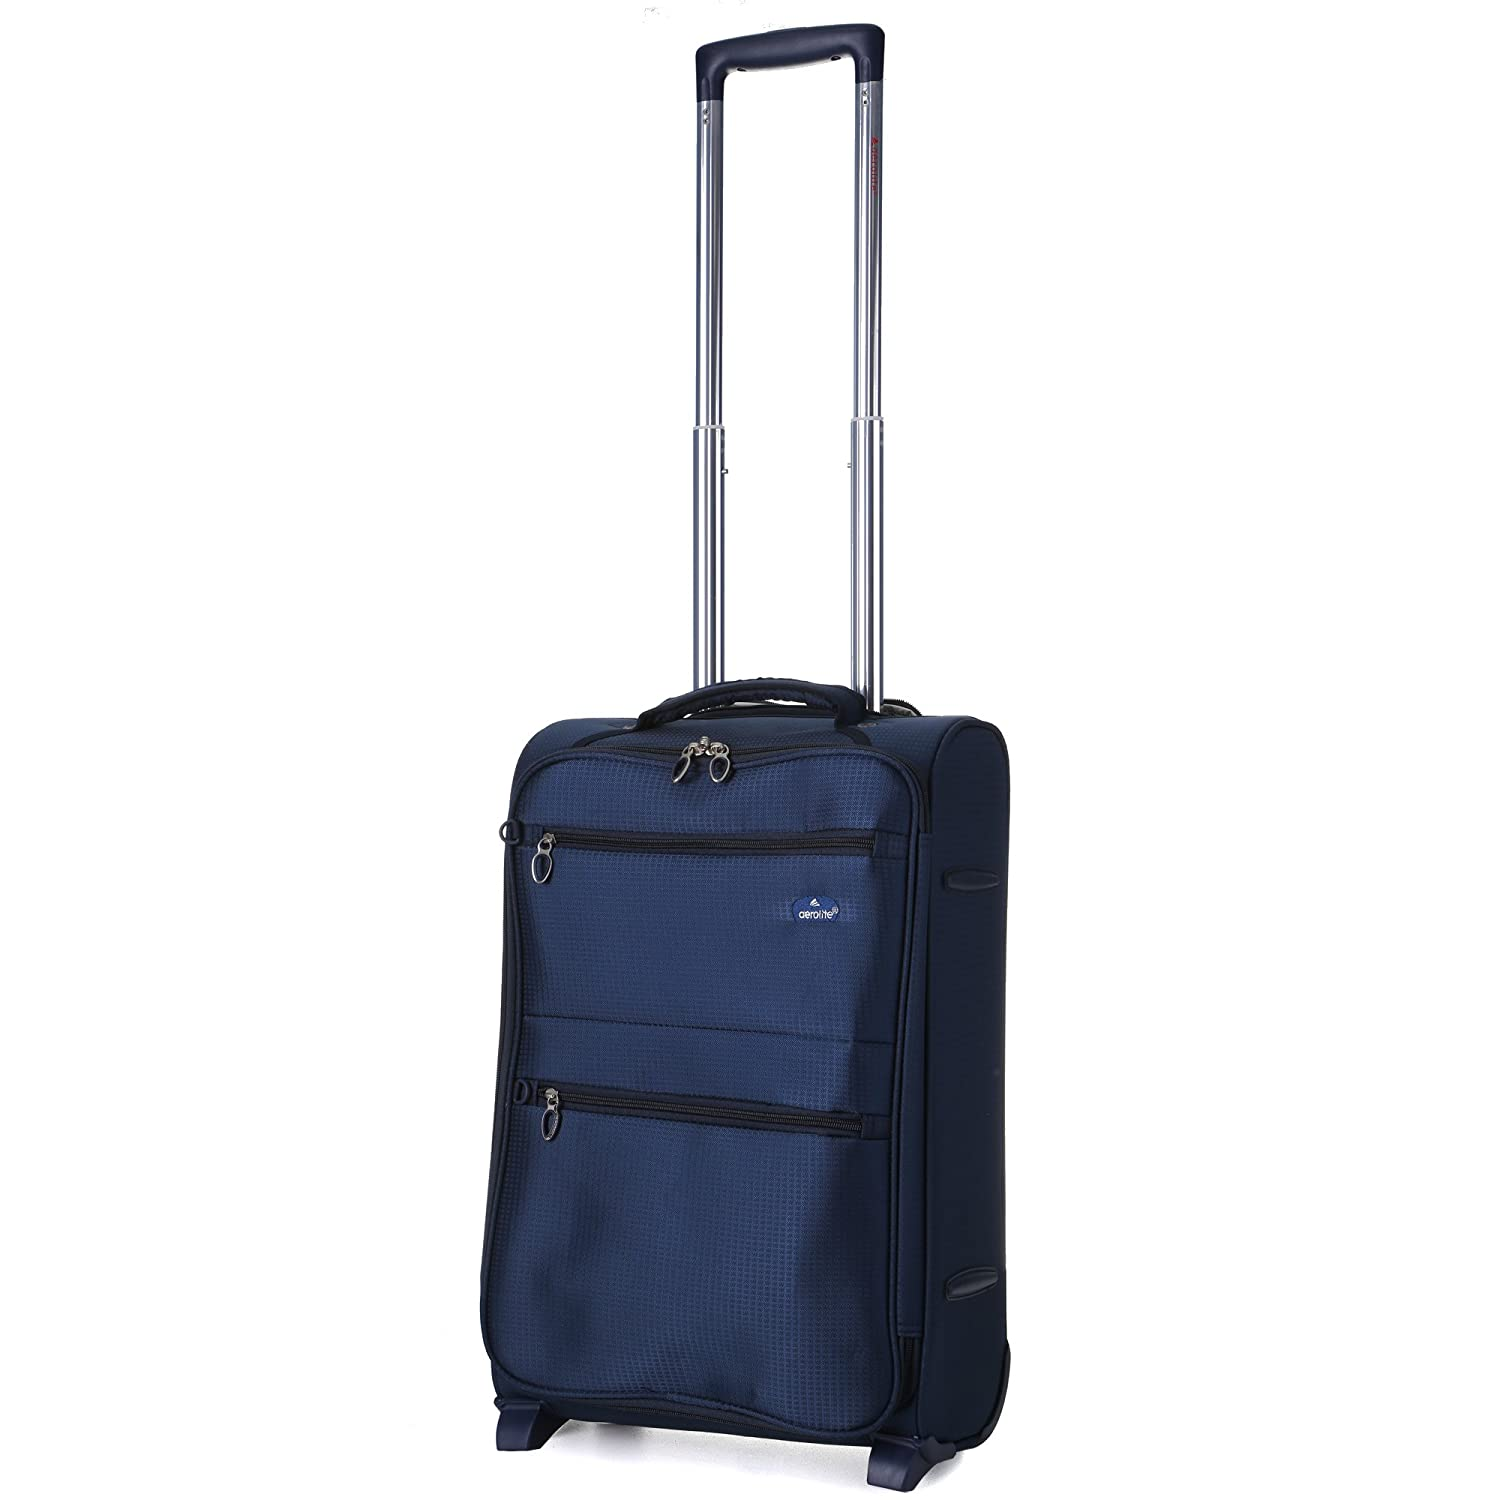 aerolite premium bagages main valise cabine sac correspond ryanair easyjet ebay. Black Bedroom Furniture Sets. Home Design Ideas